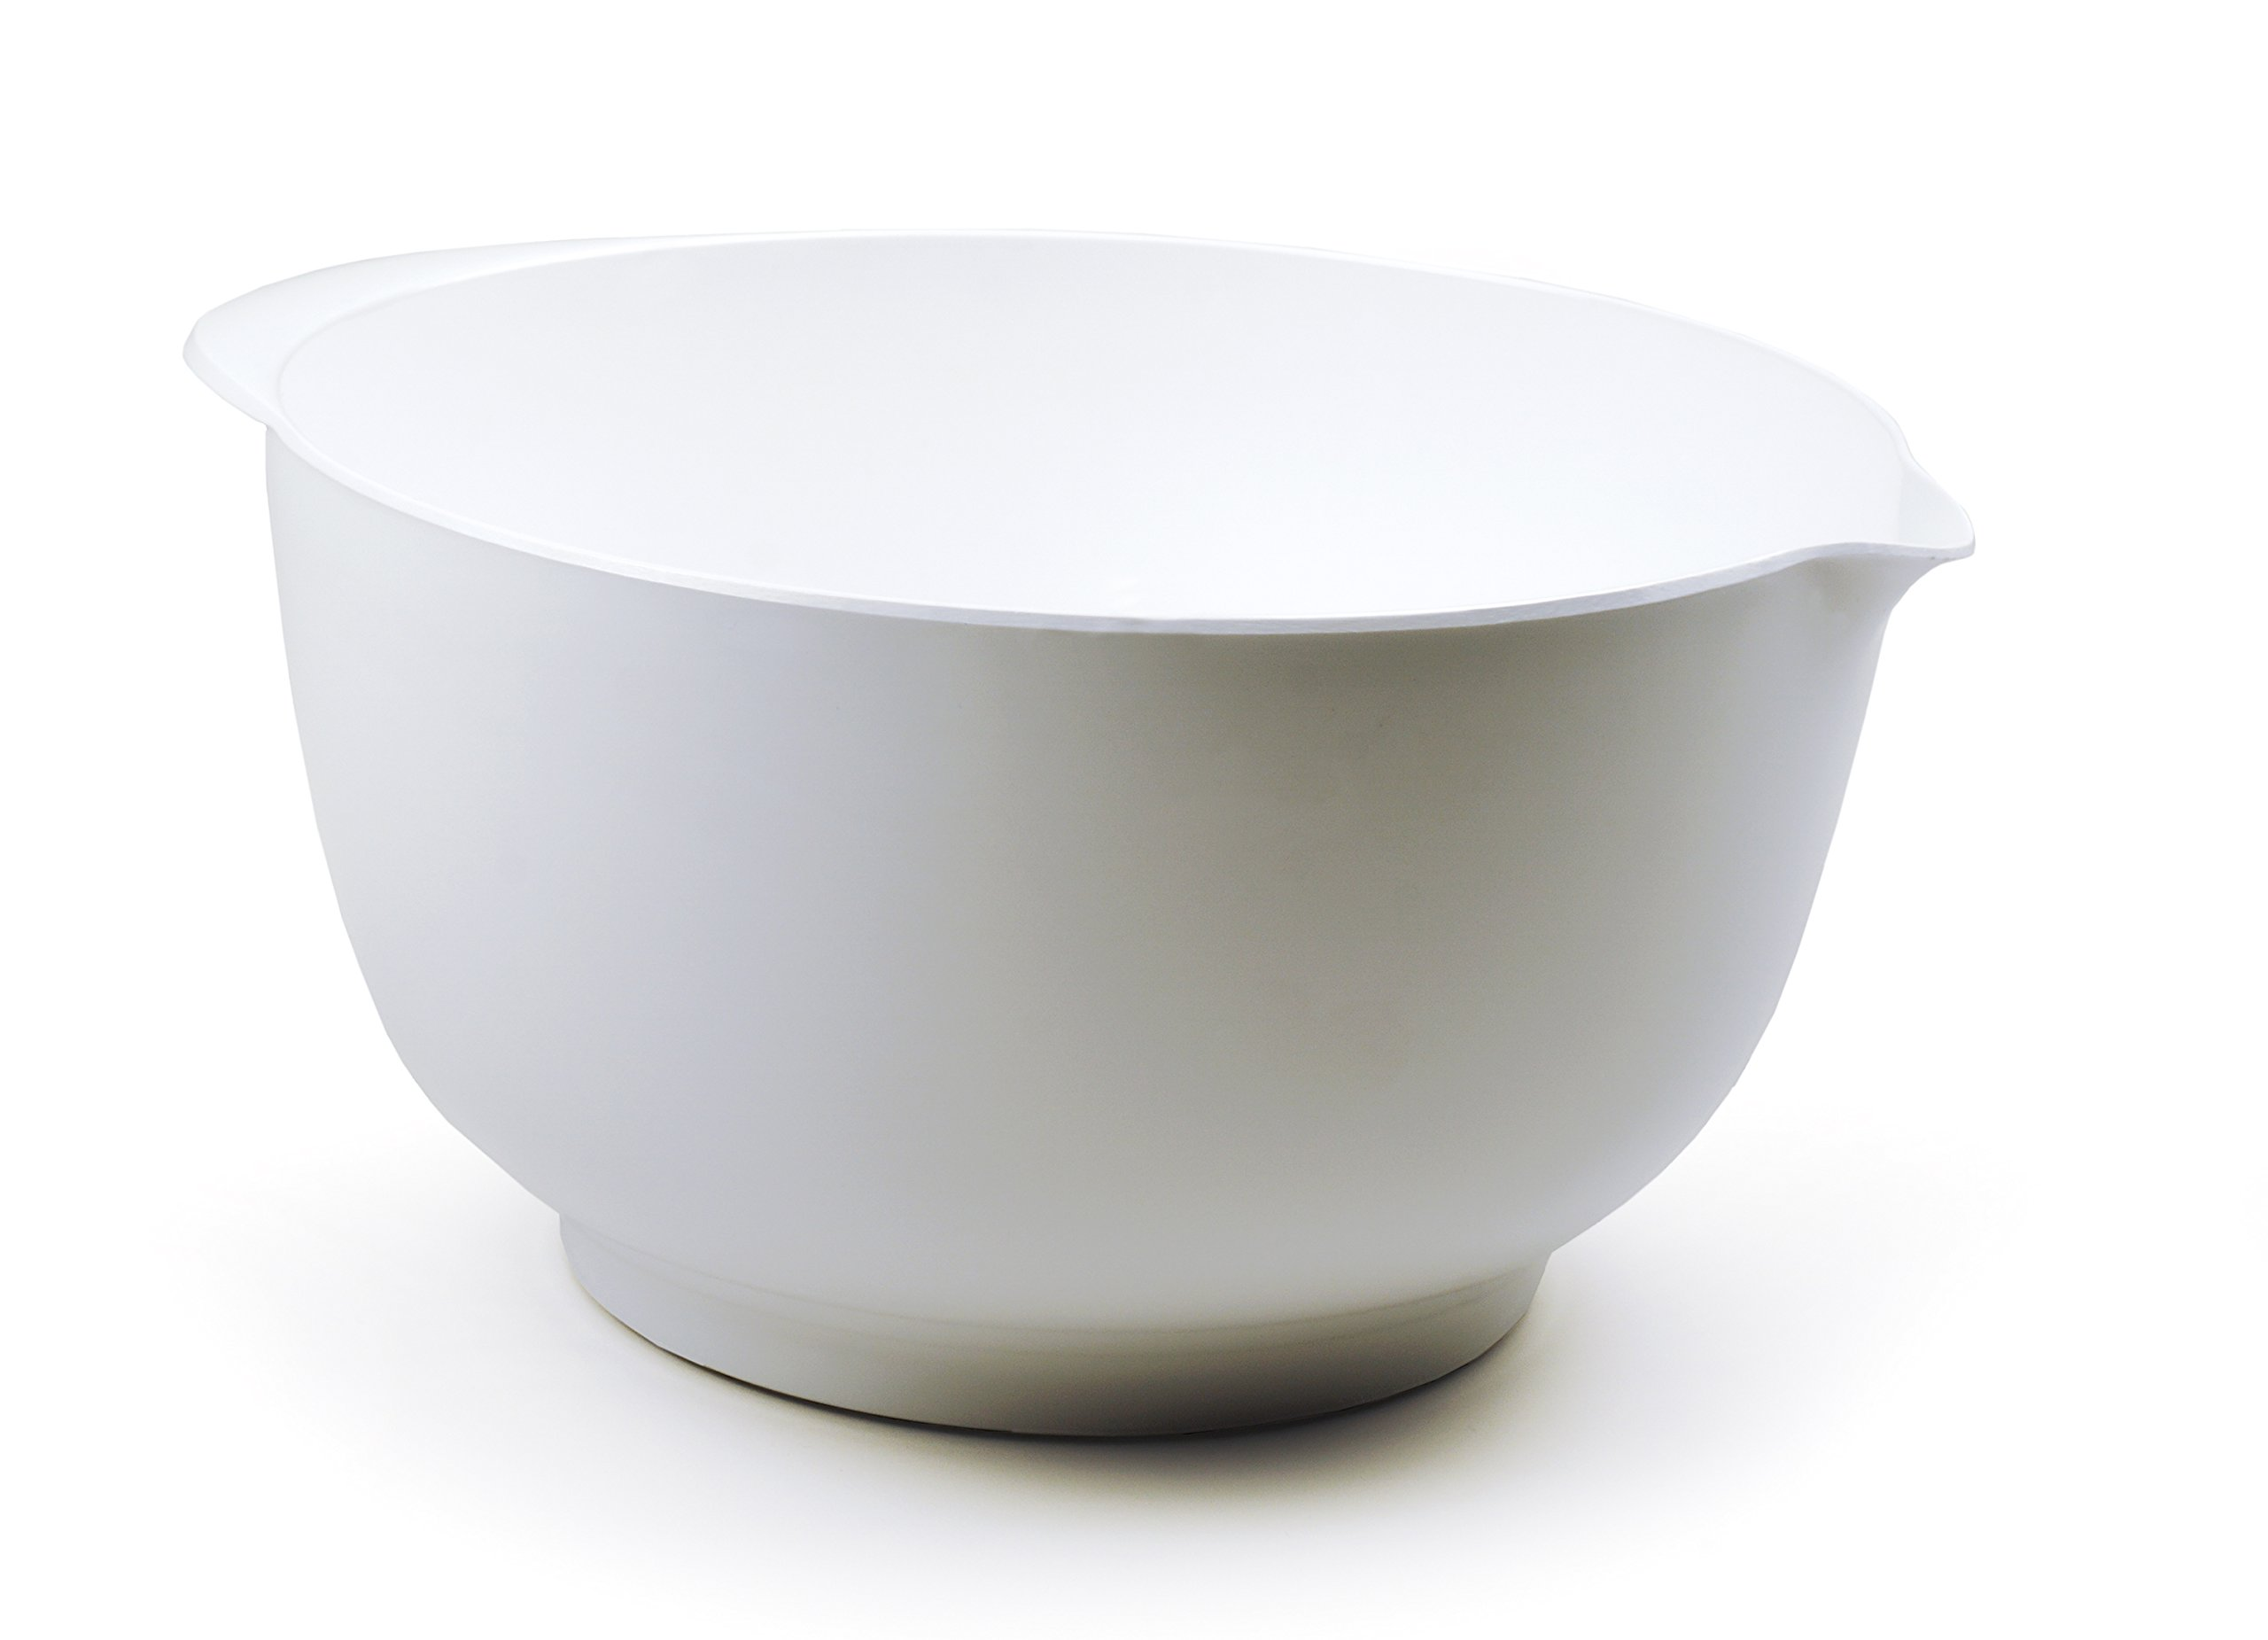 RSVP Melamine Mixing Bowl, White, 4-Quart